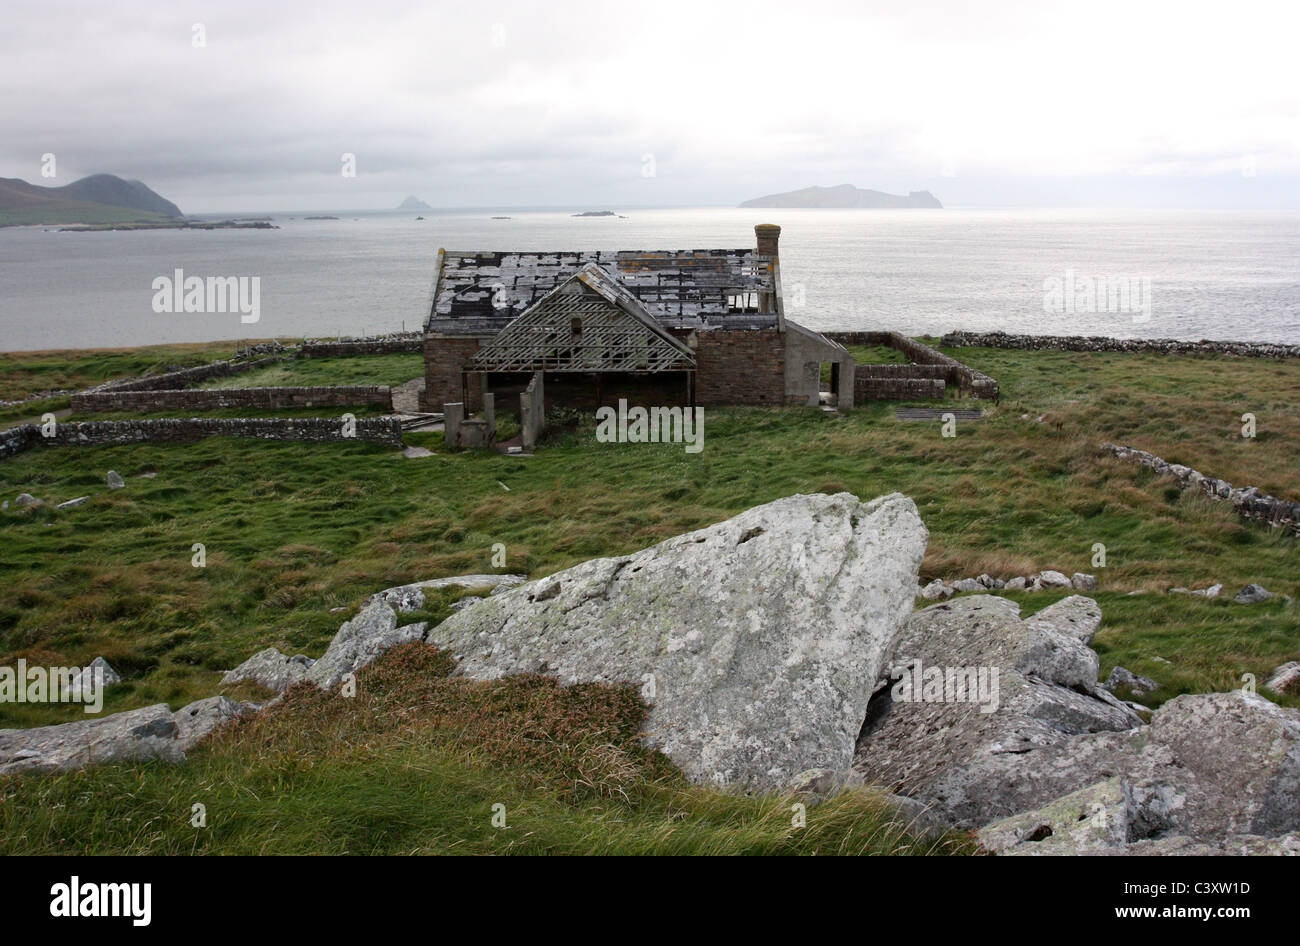 The Old School near Dingle which was part of the Ryans Daughter film set. Stock Photo